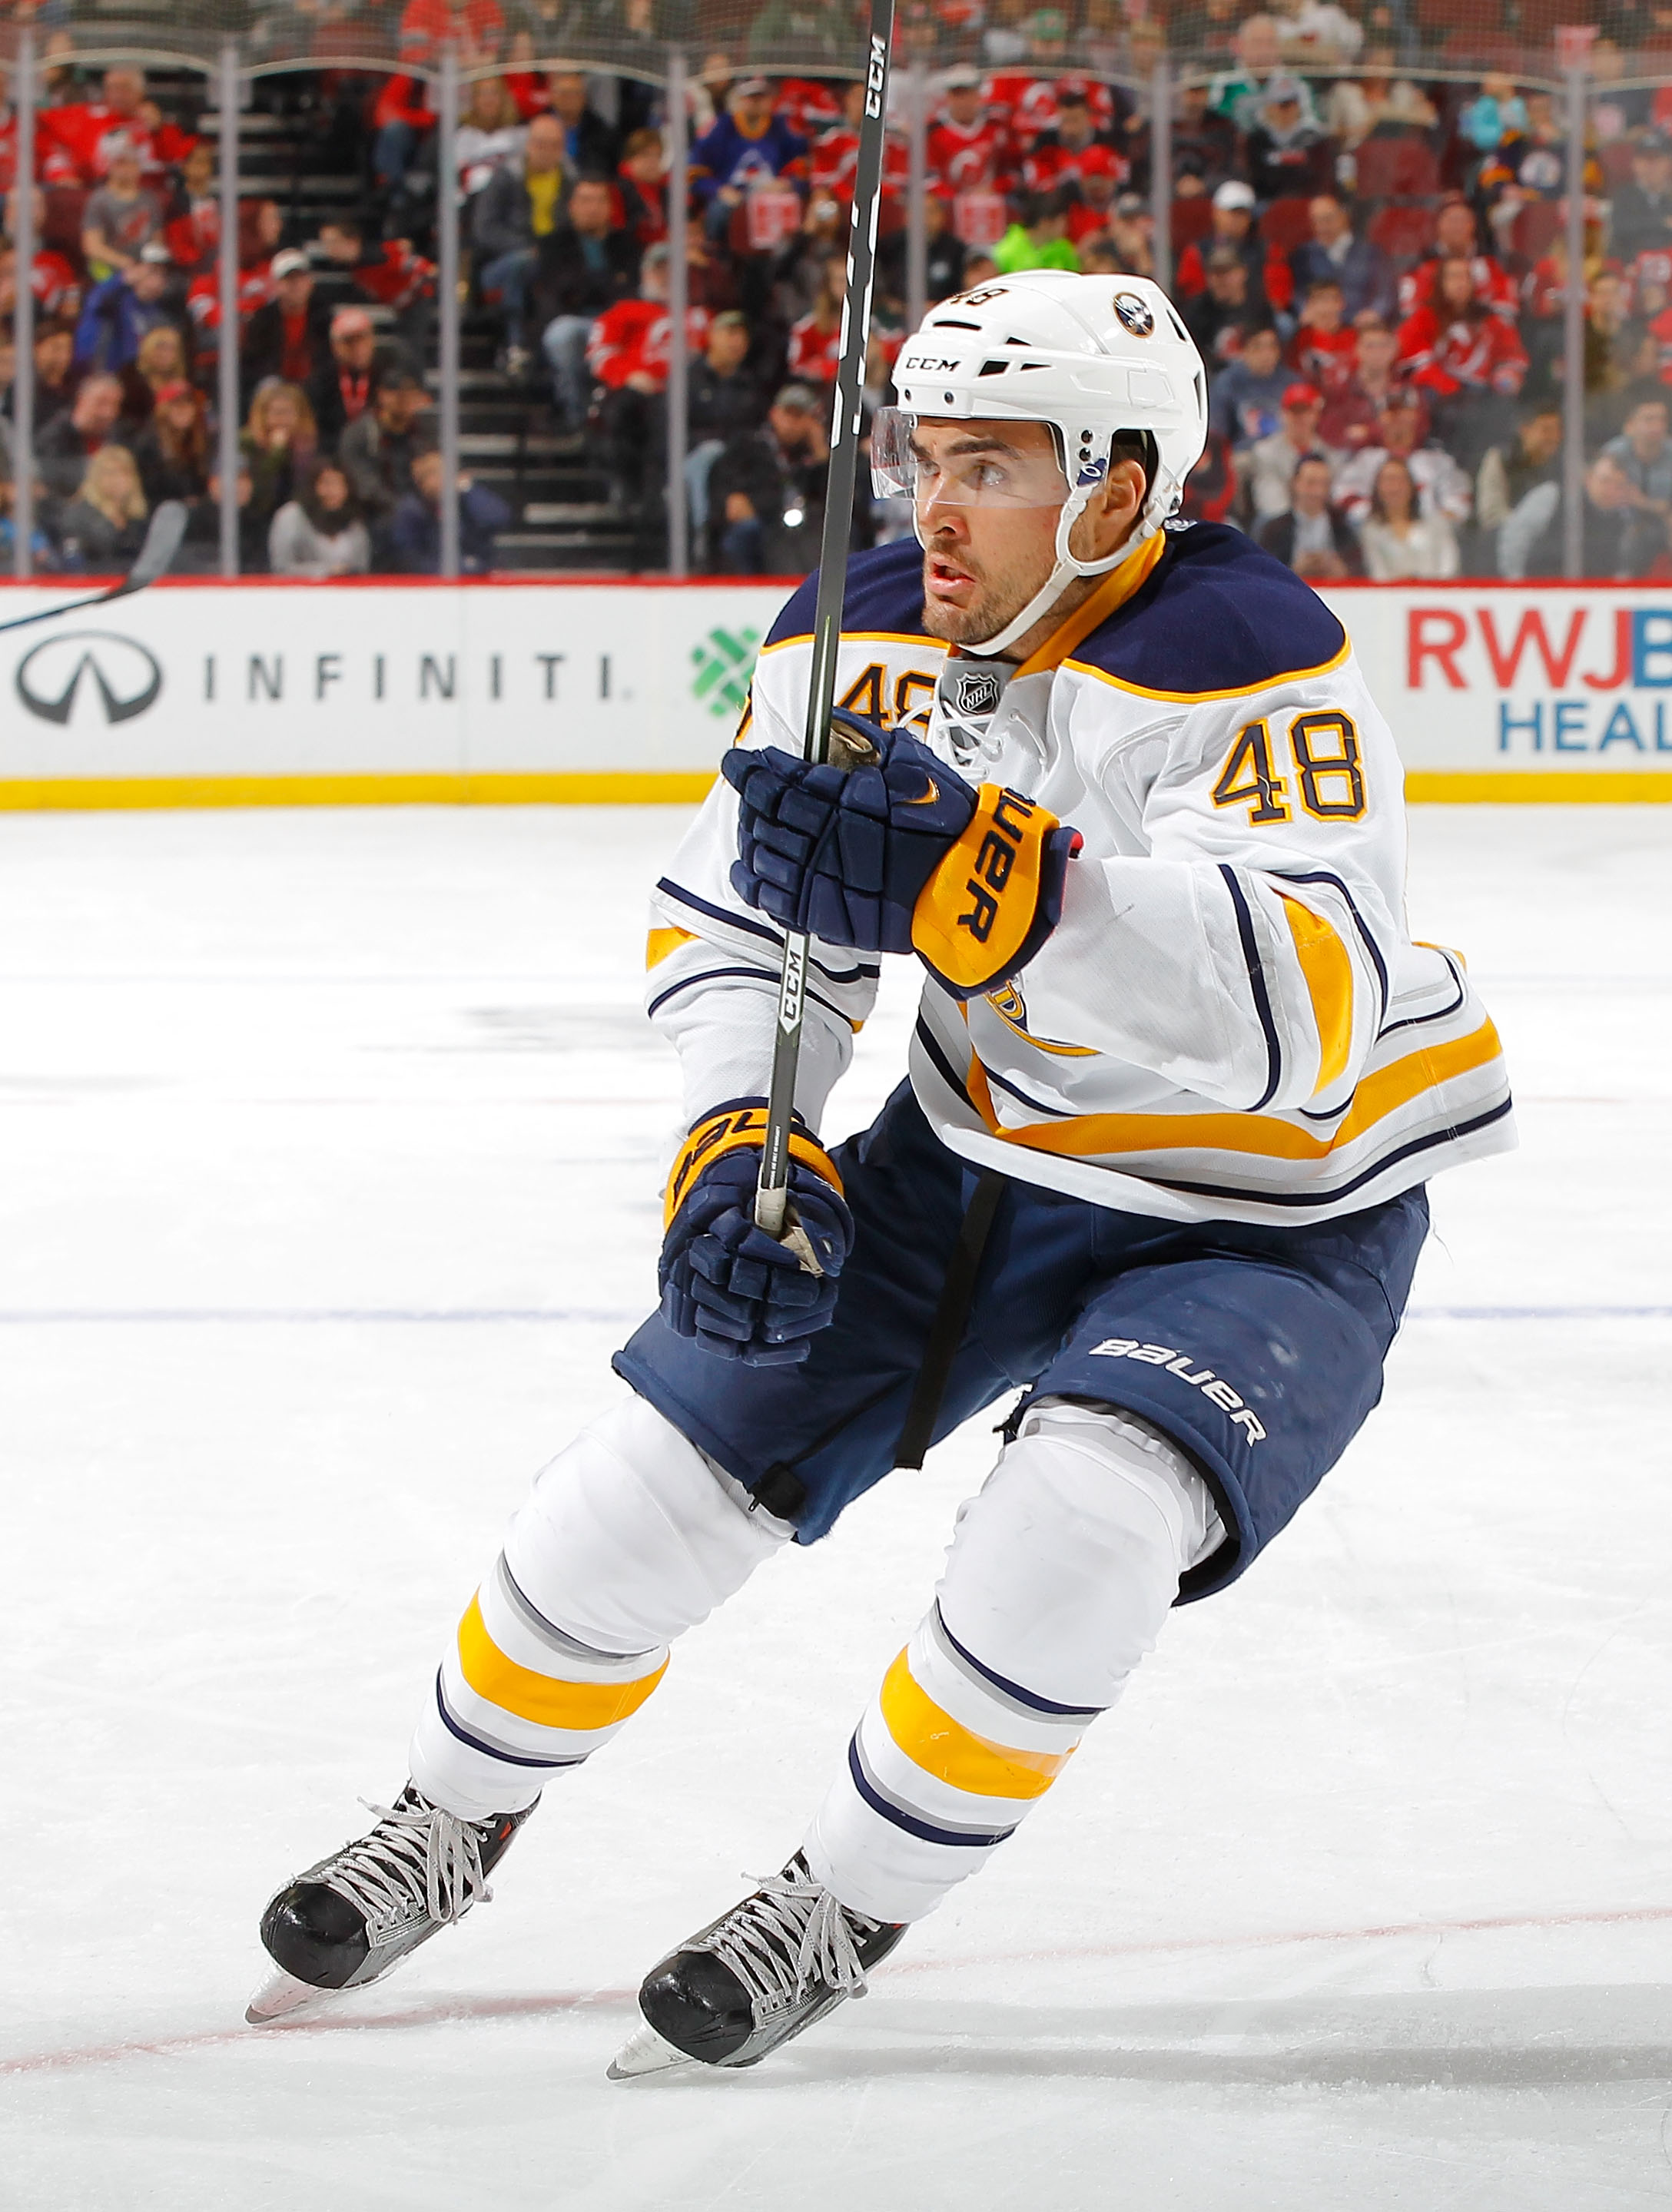 William Carrier will play on the Sabres' top line. (Getty Images)